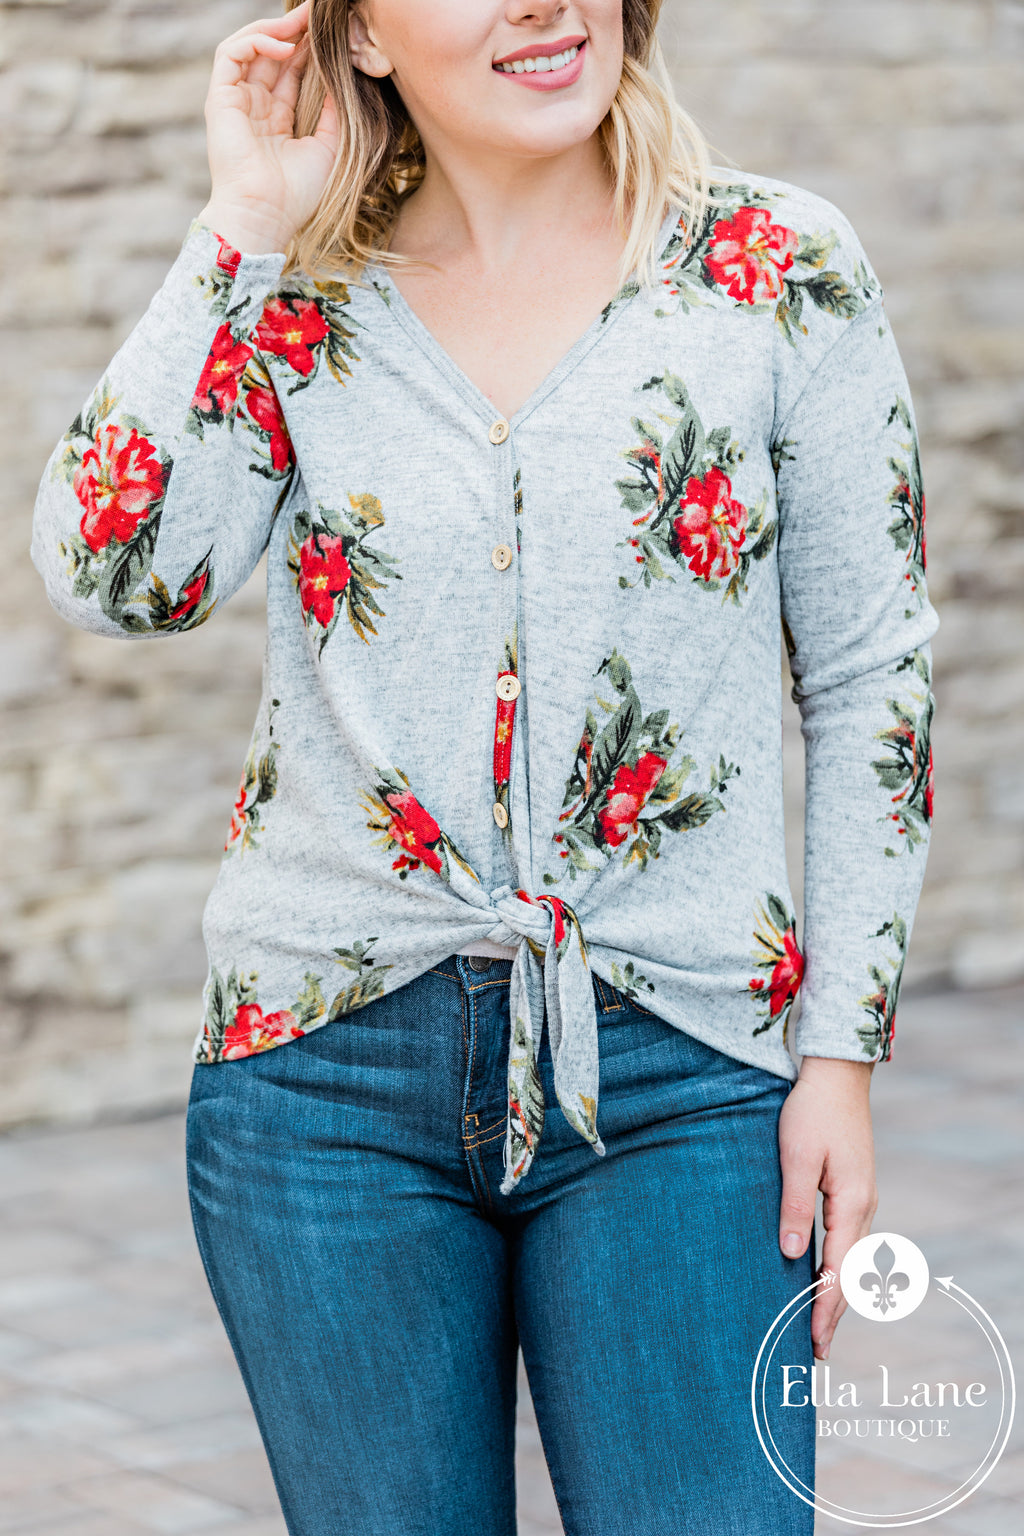 Annabelle Floral Front Tie Top - Grey FINAL SALE